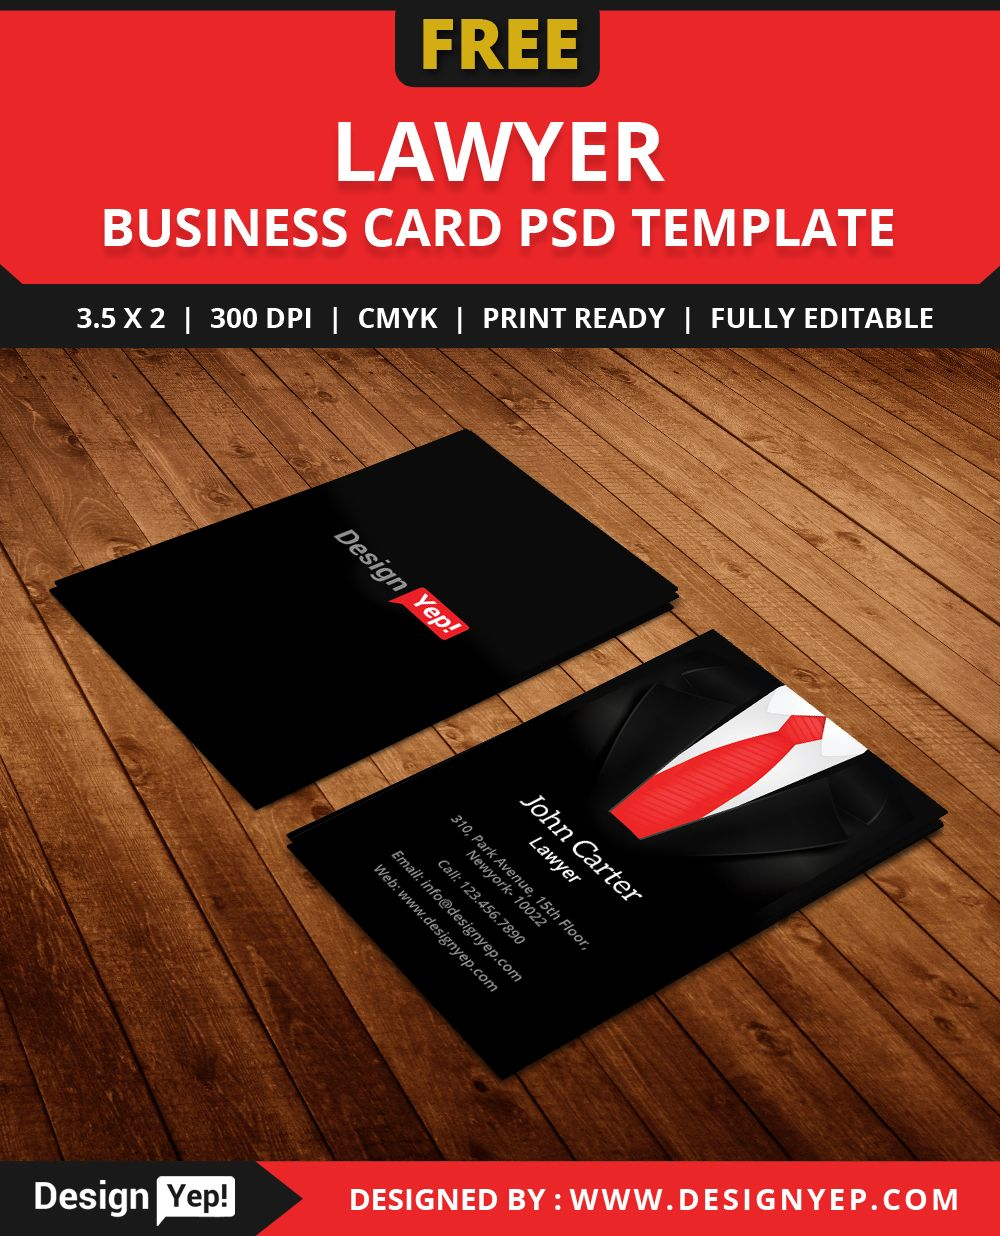 Free lawyer business card template psd free business card free lawyer business card template psd fbccfo Choice Image